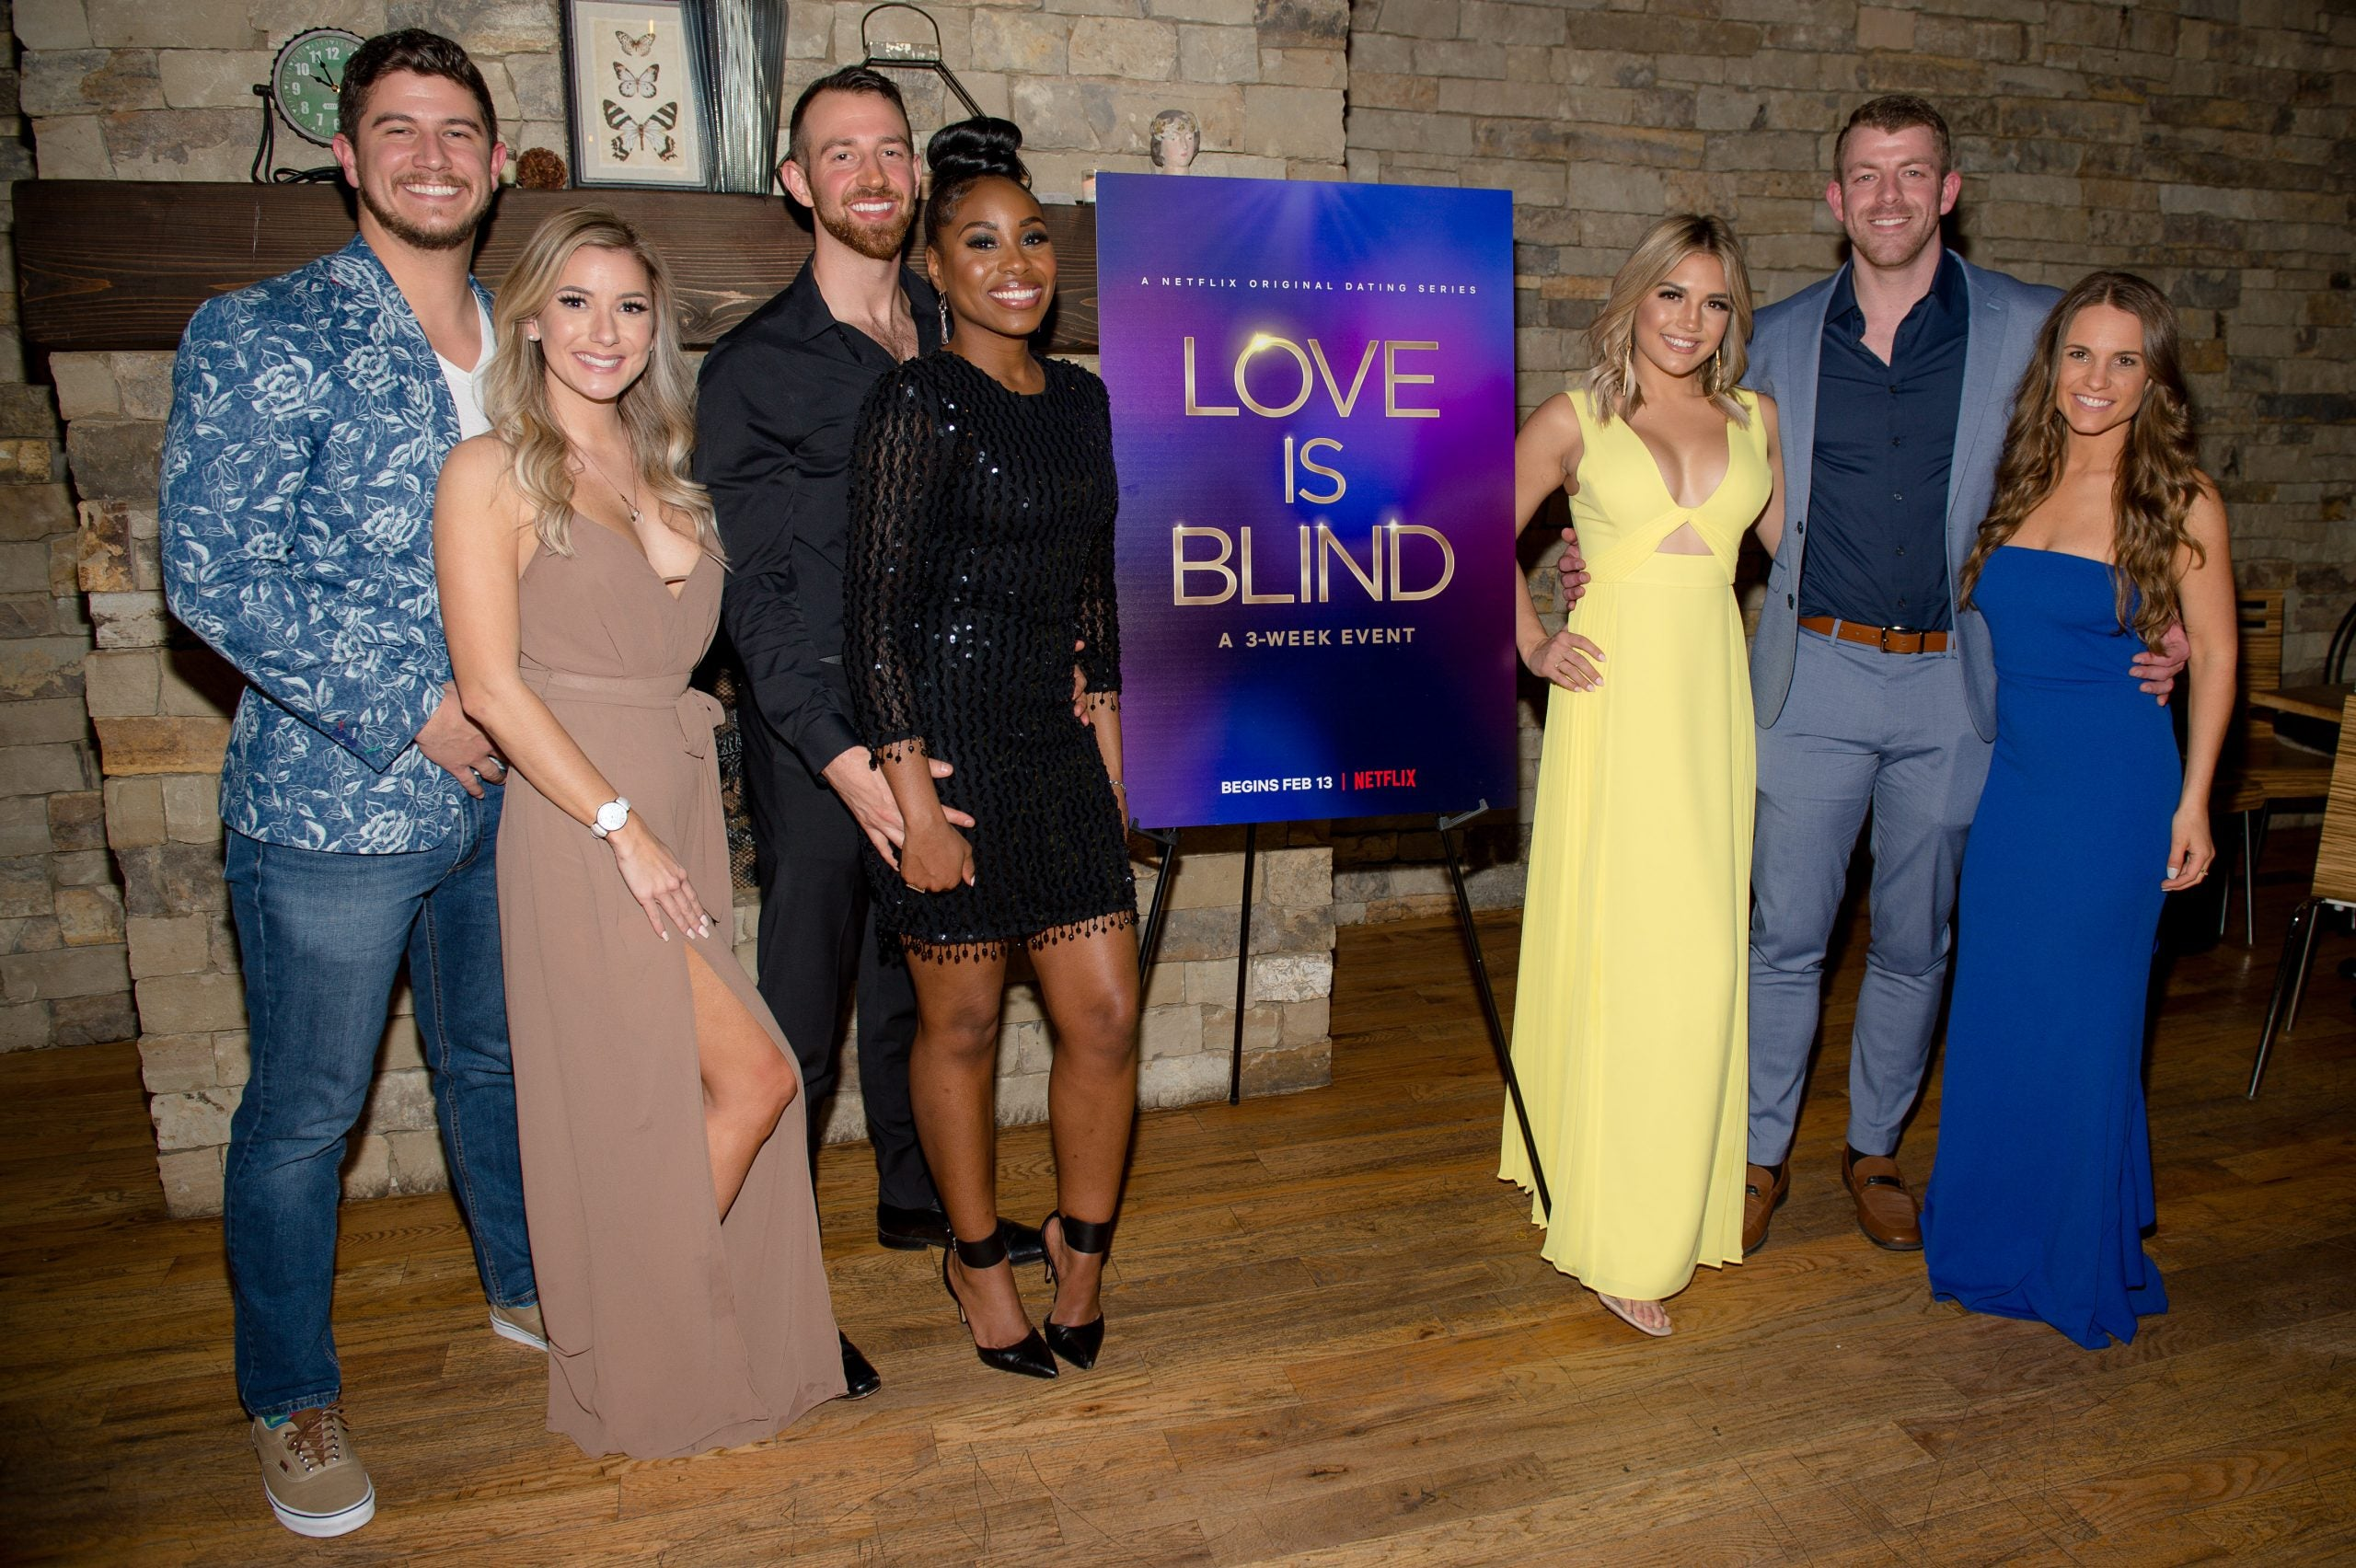 Netflix's dating show Love is Blind is horrific but compelling viewing